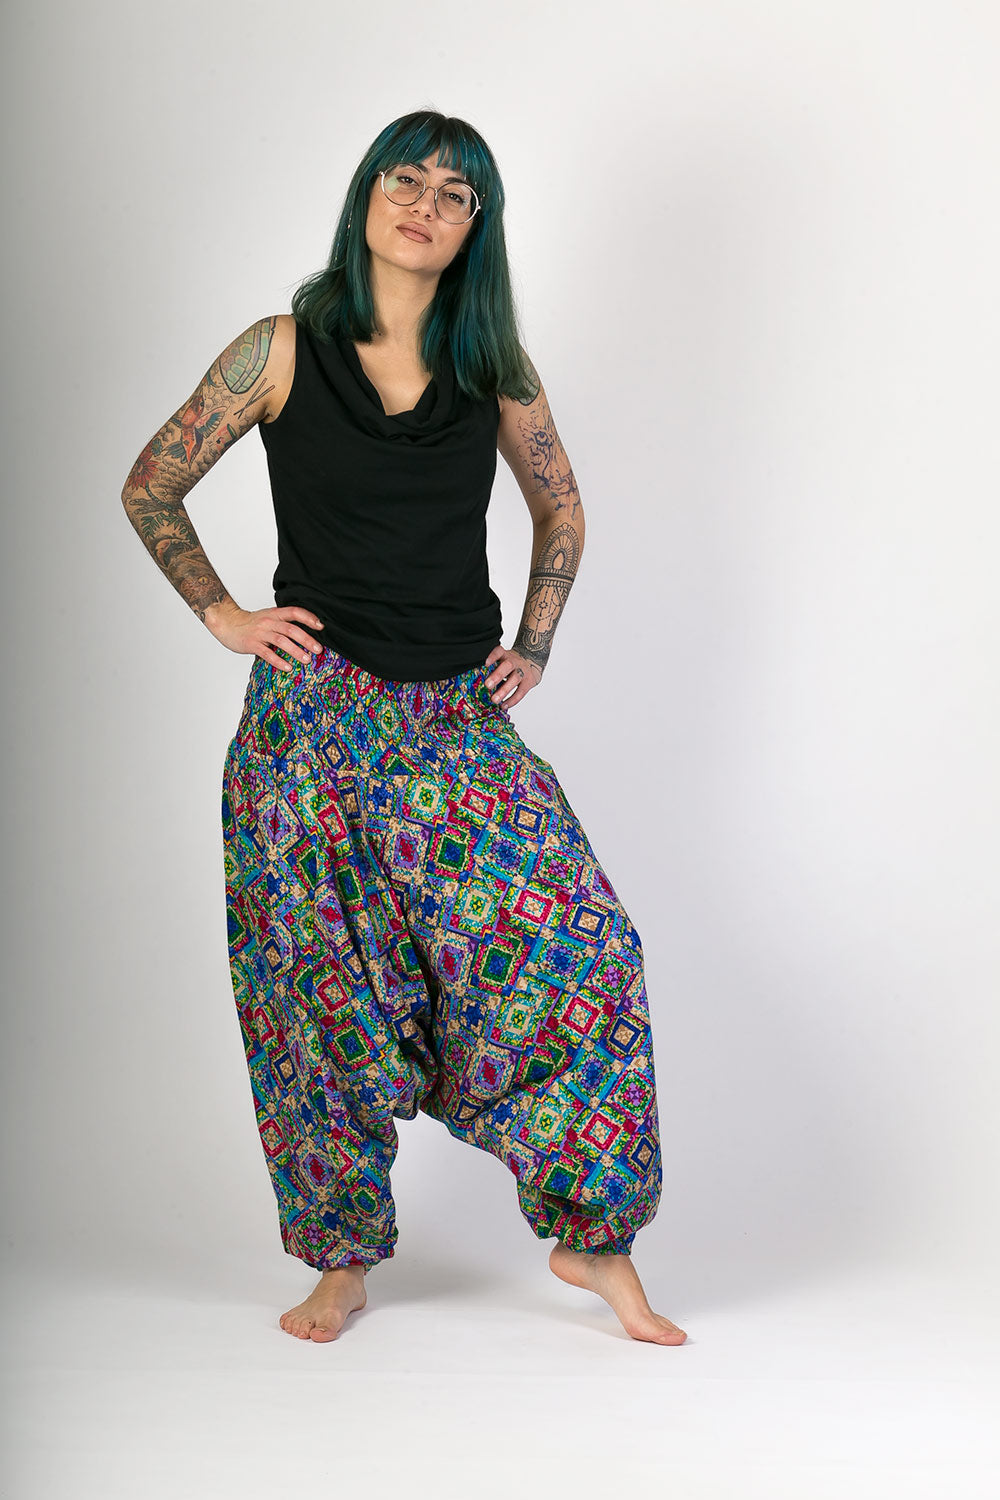 Blue Print Cotton Hareem Yoga Jumpsuit Pants - Avalonia, Avalonia - Avalonia